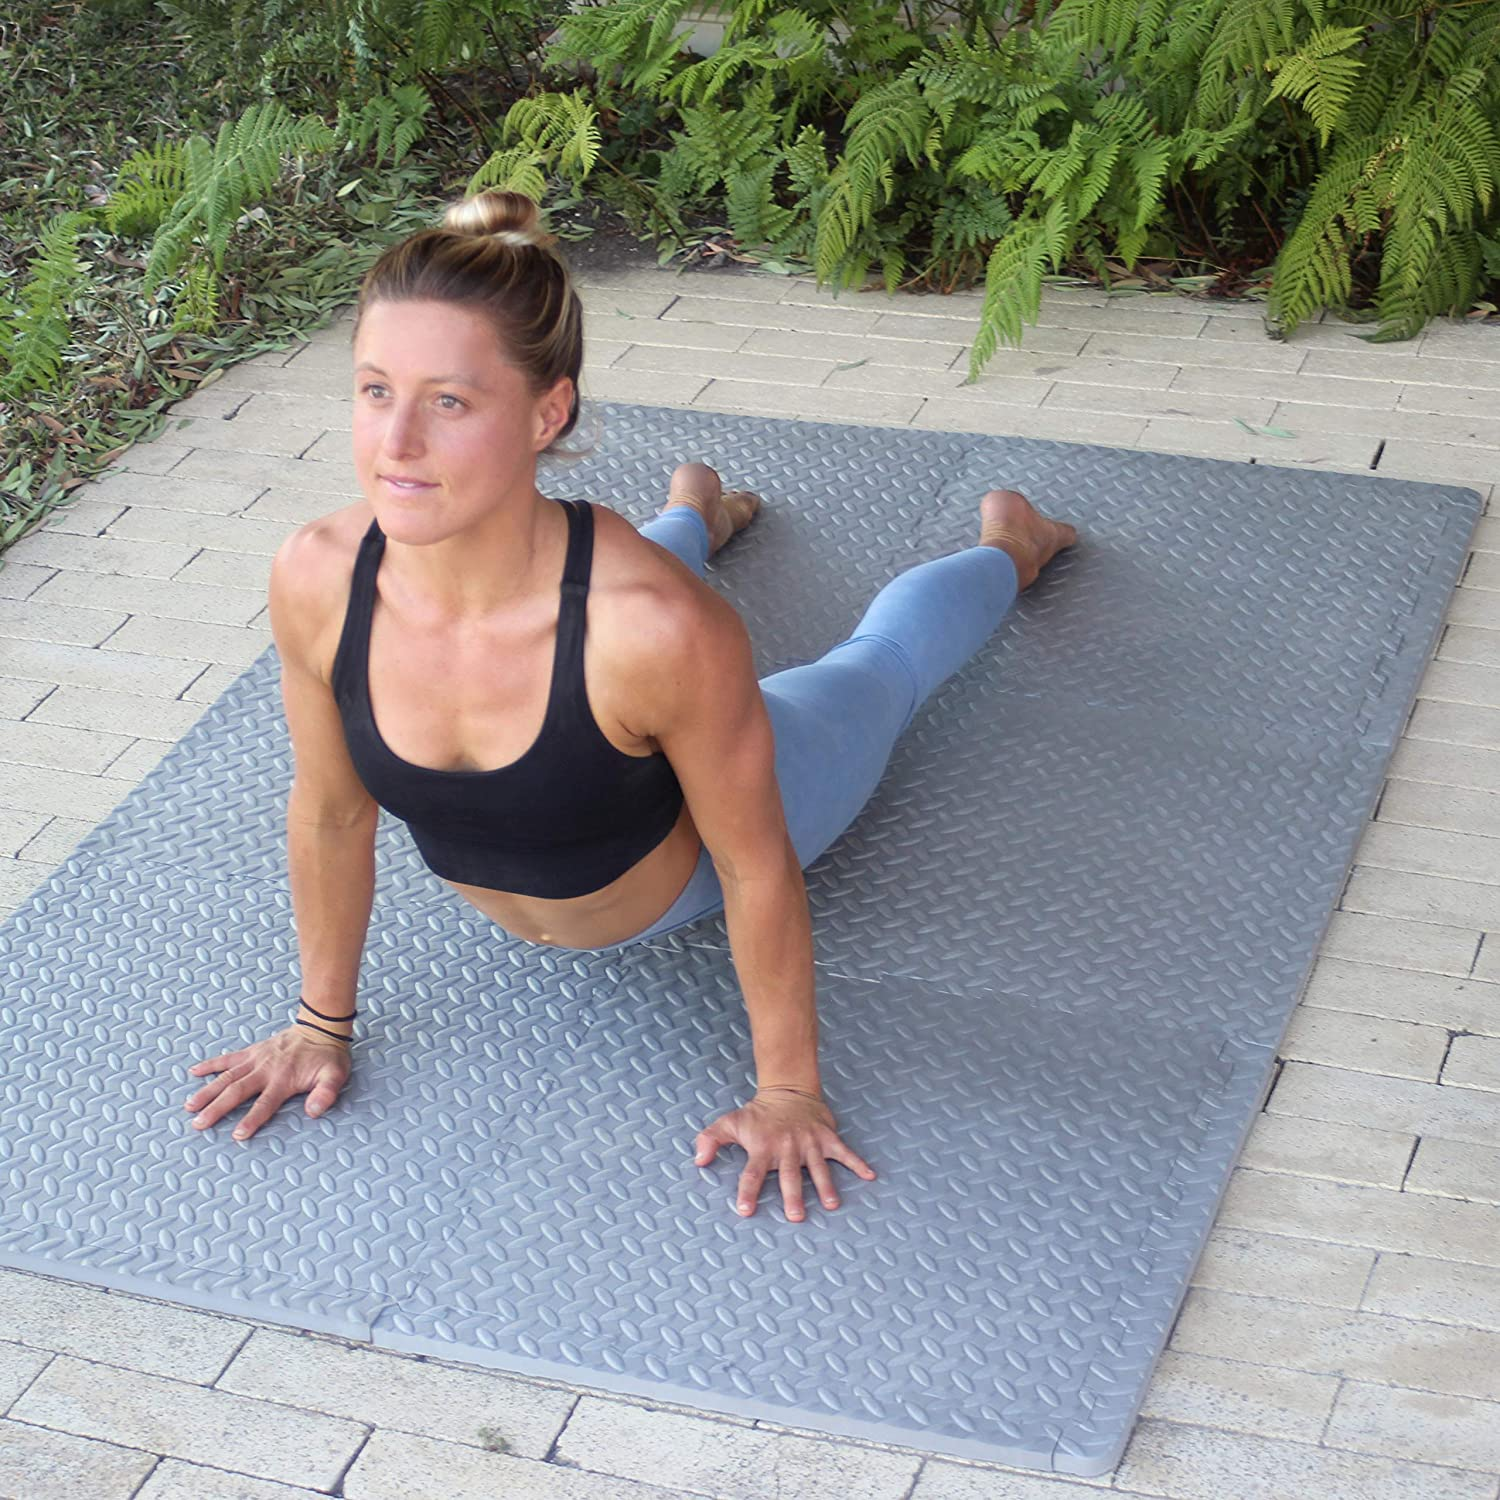 FUN n SAFE Exercise Mat Workspace EVA Interlocking Tiles for Gym and Home Fitness Area Garage